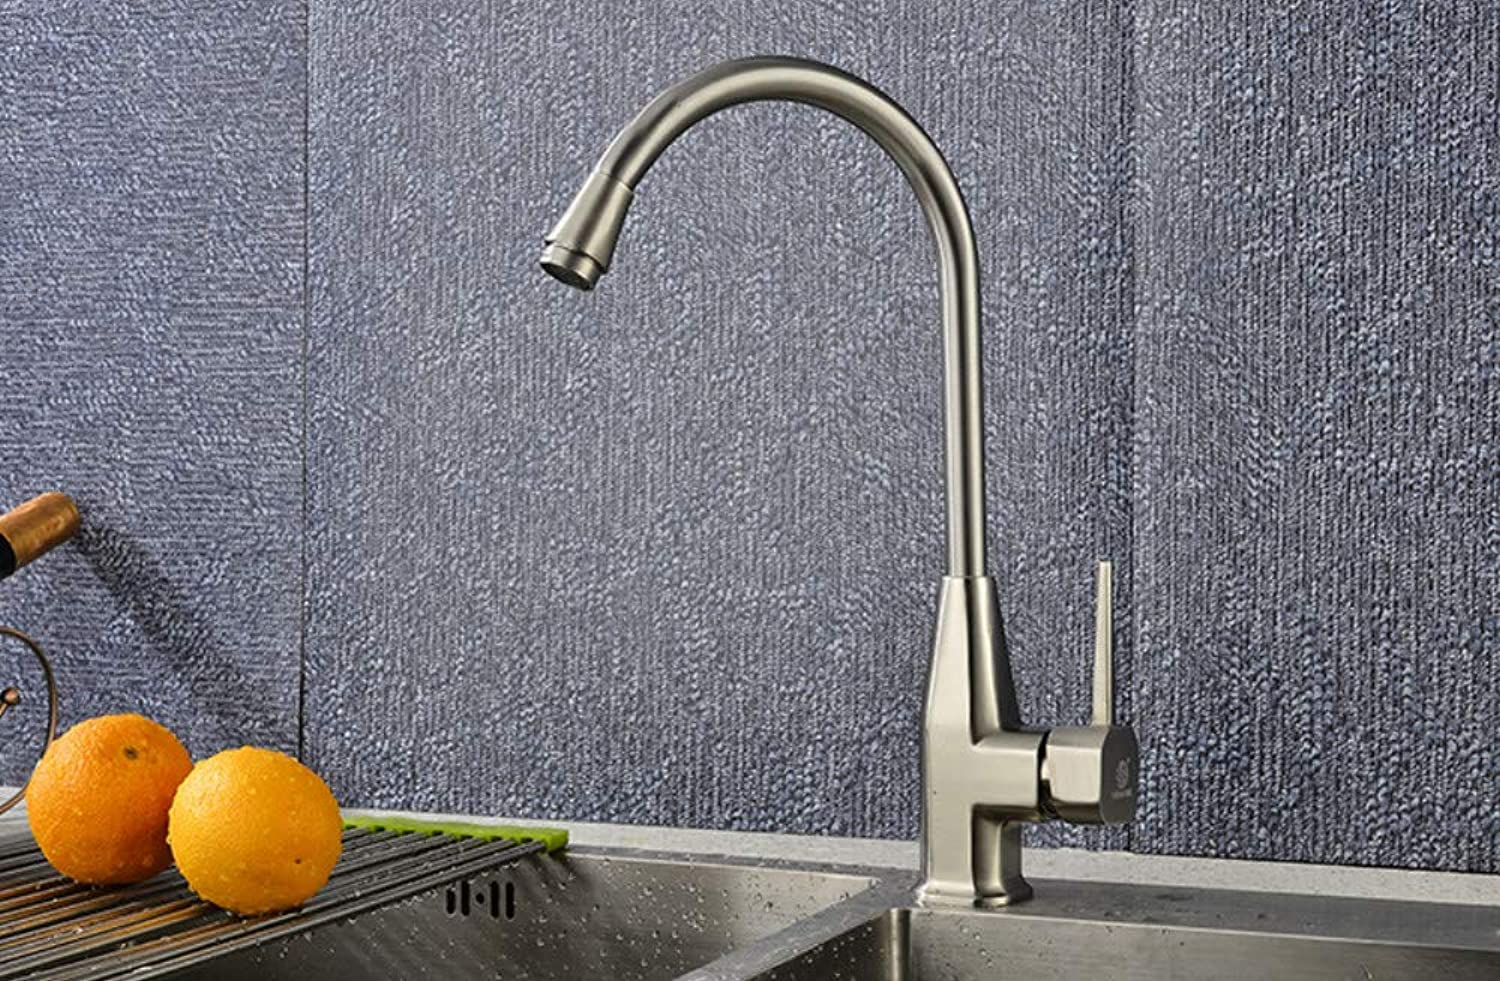 Brushed Kitchen Faucet Hot and Cold Sink Sink redating Mixer